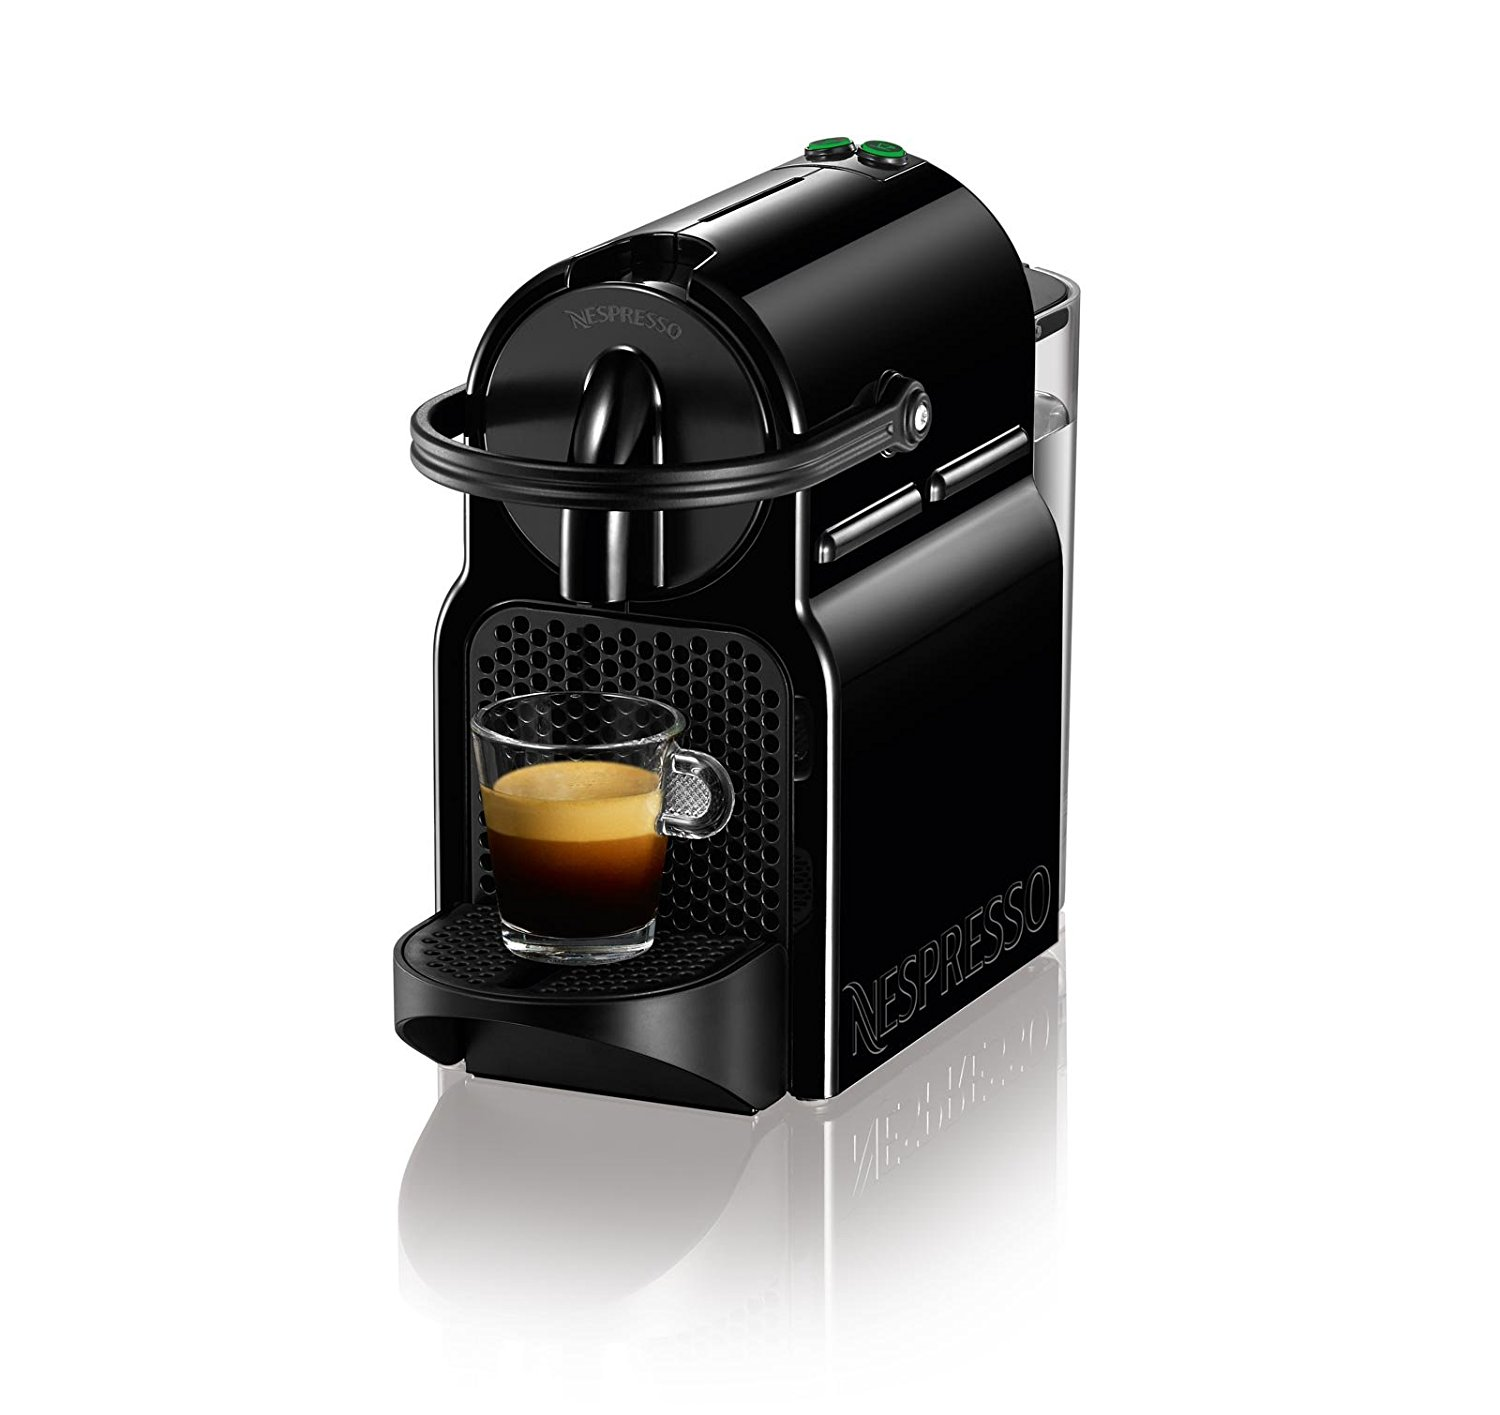 Review of Nespresso Inissia Espresso Maker